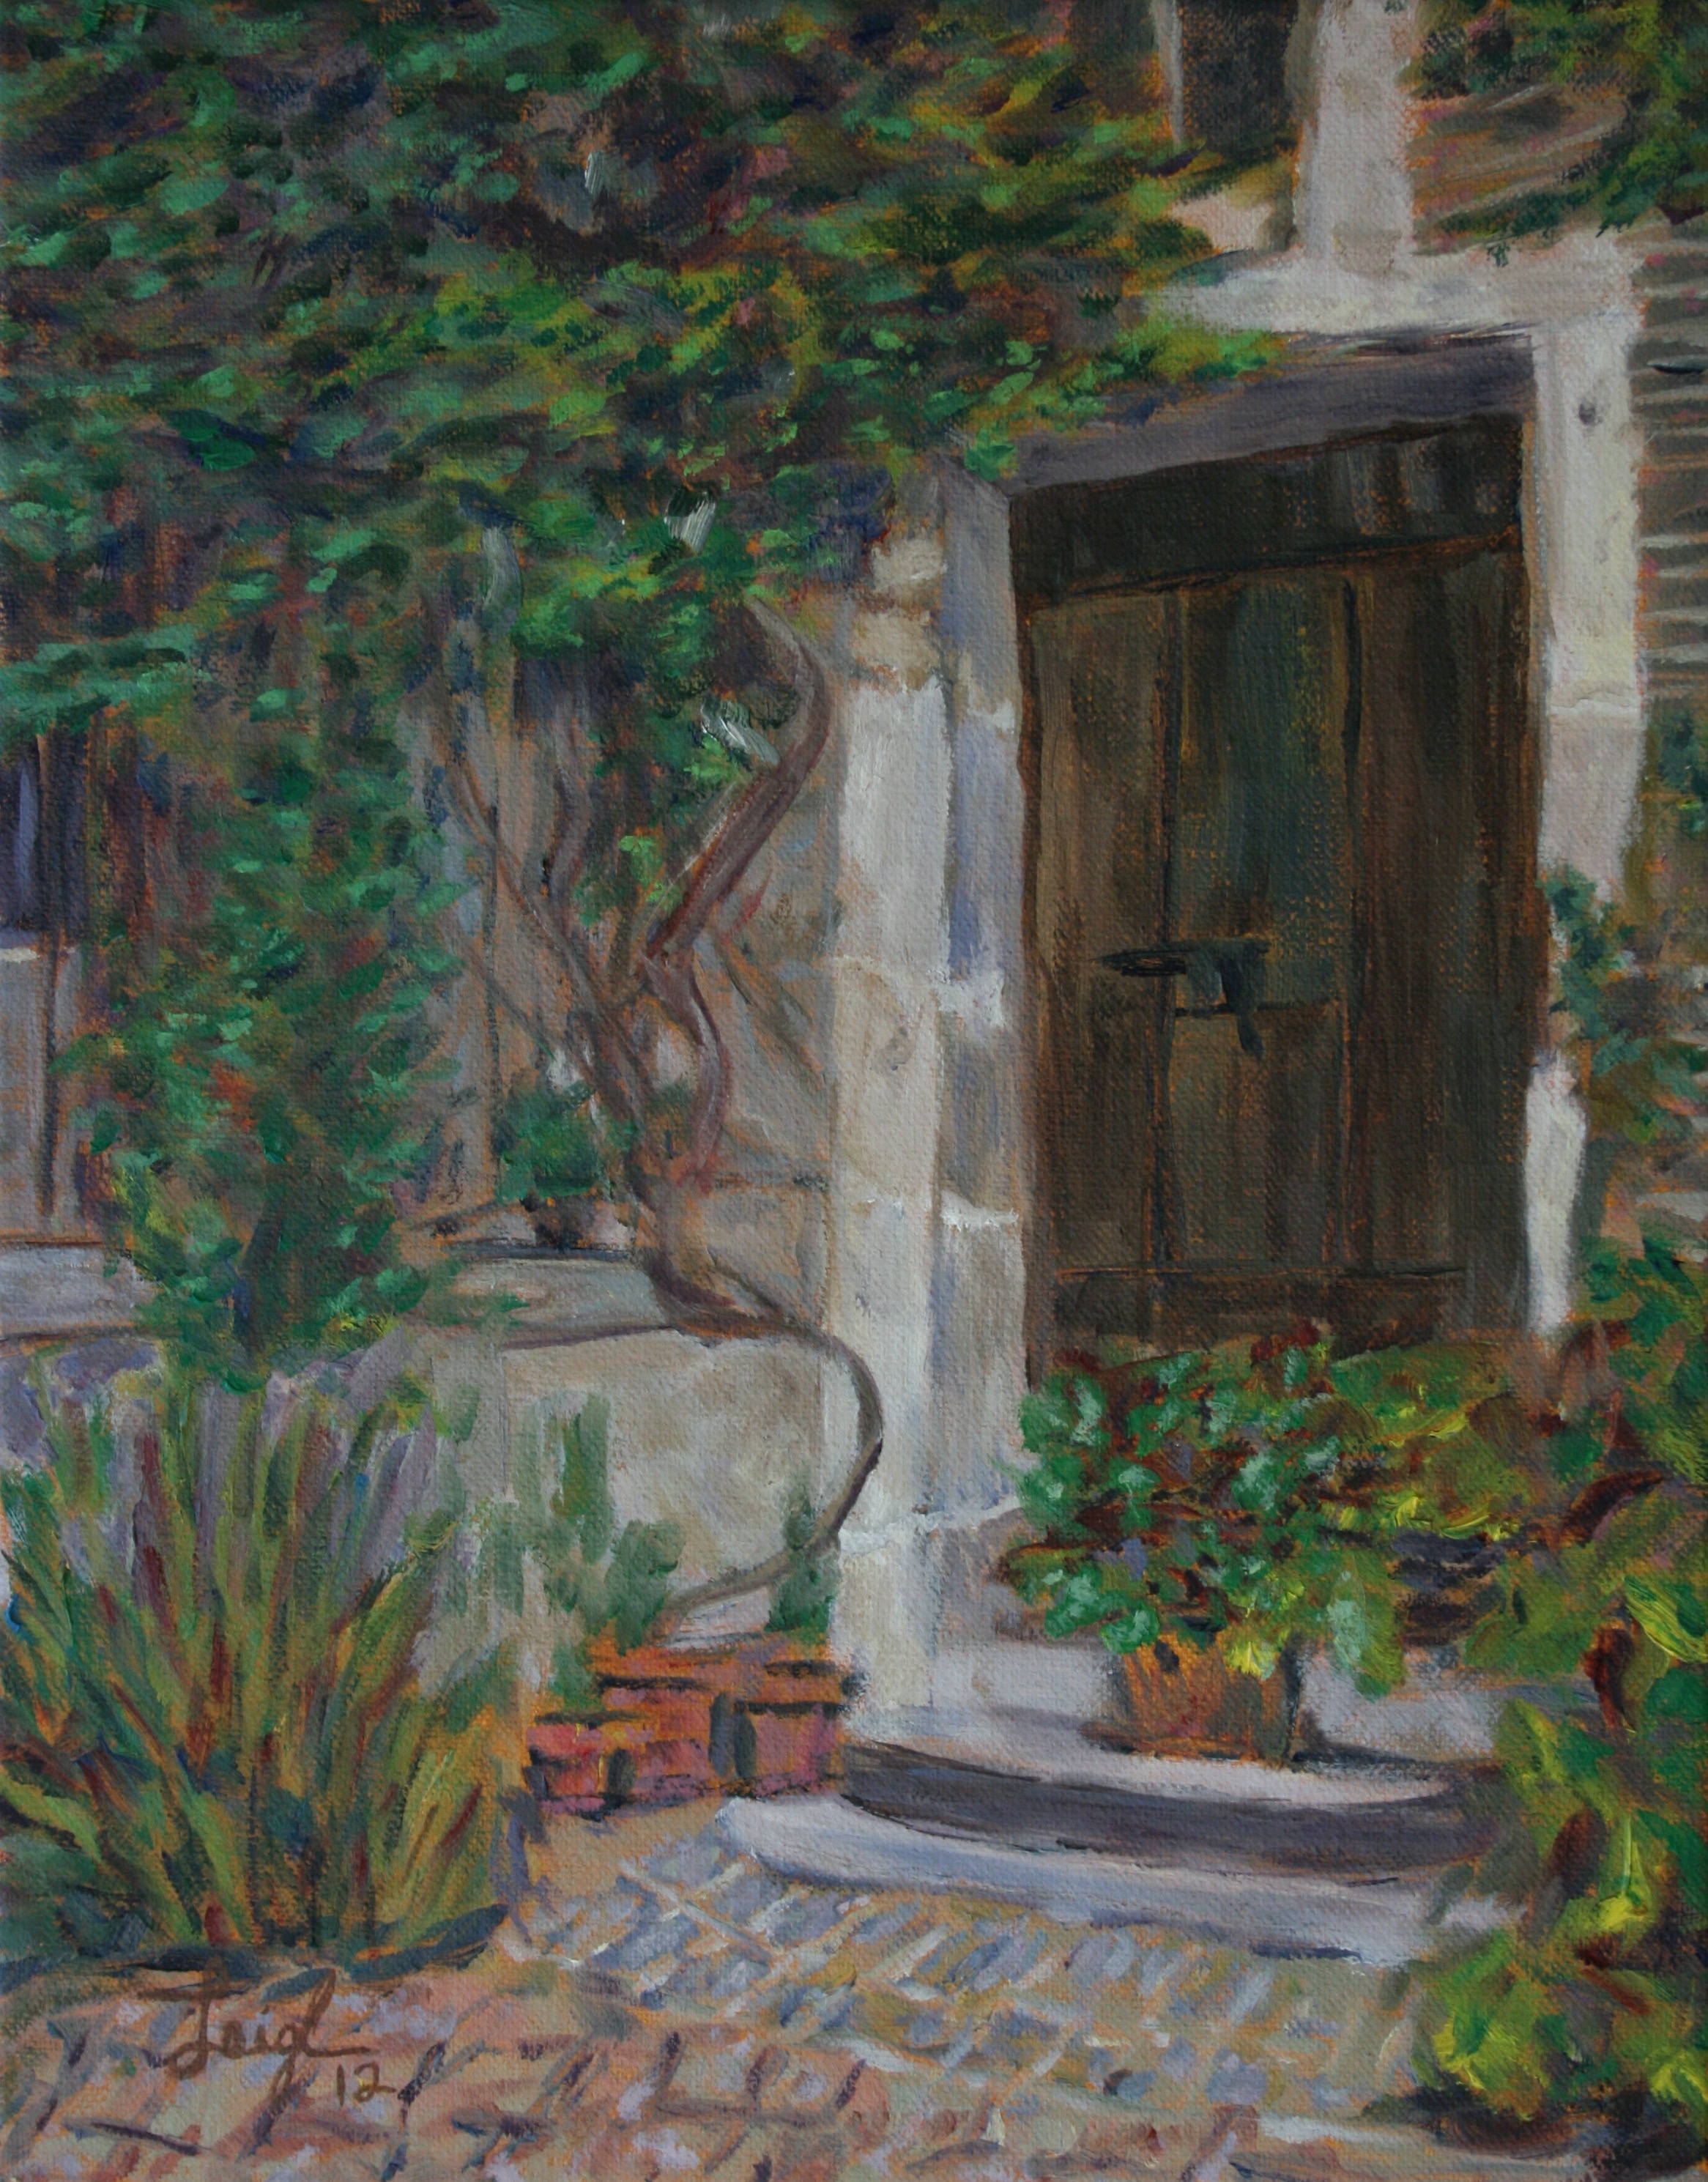 Garden Door  ~   Beth McGilley, Wichita, KS  2012 • 11 x 14